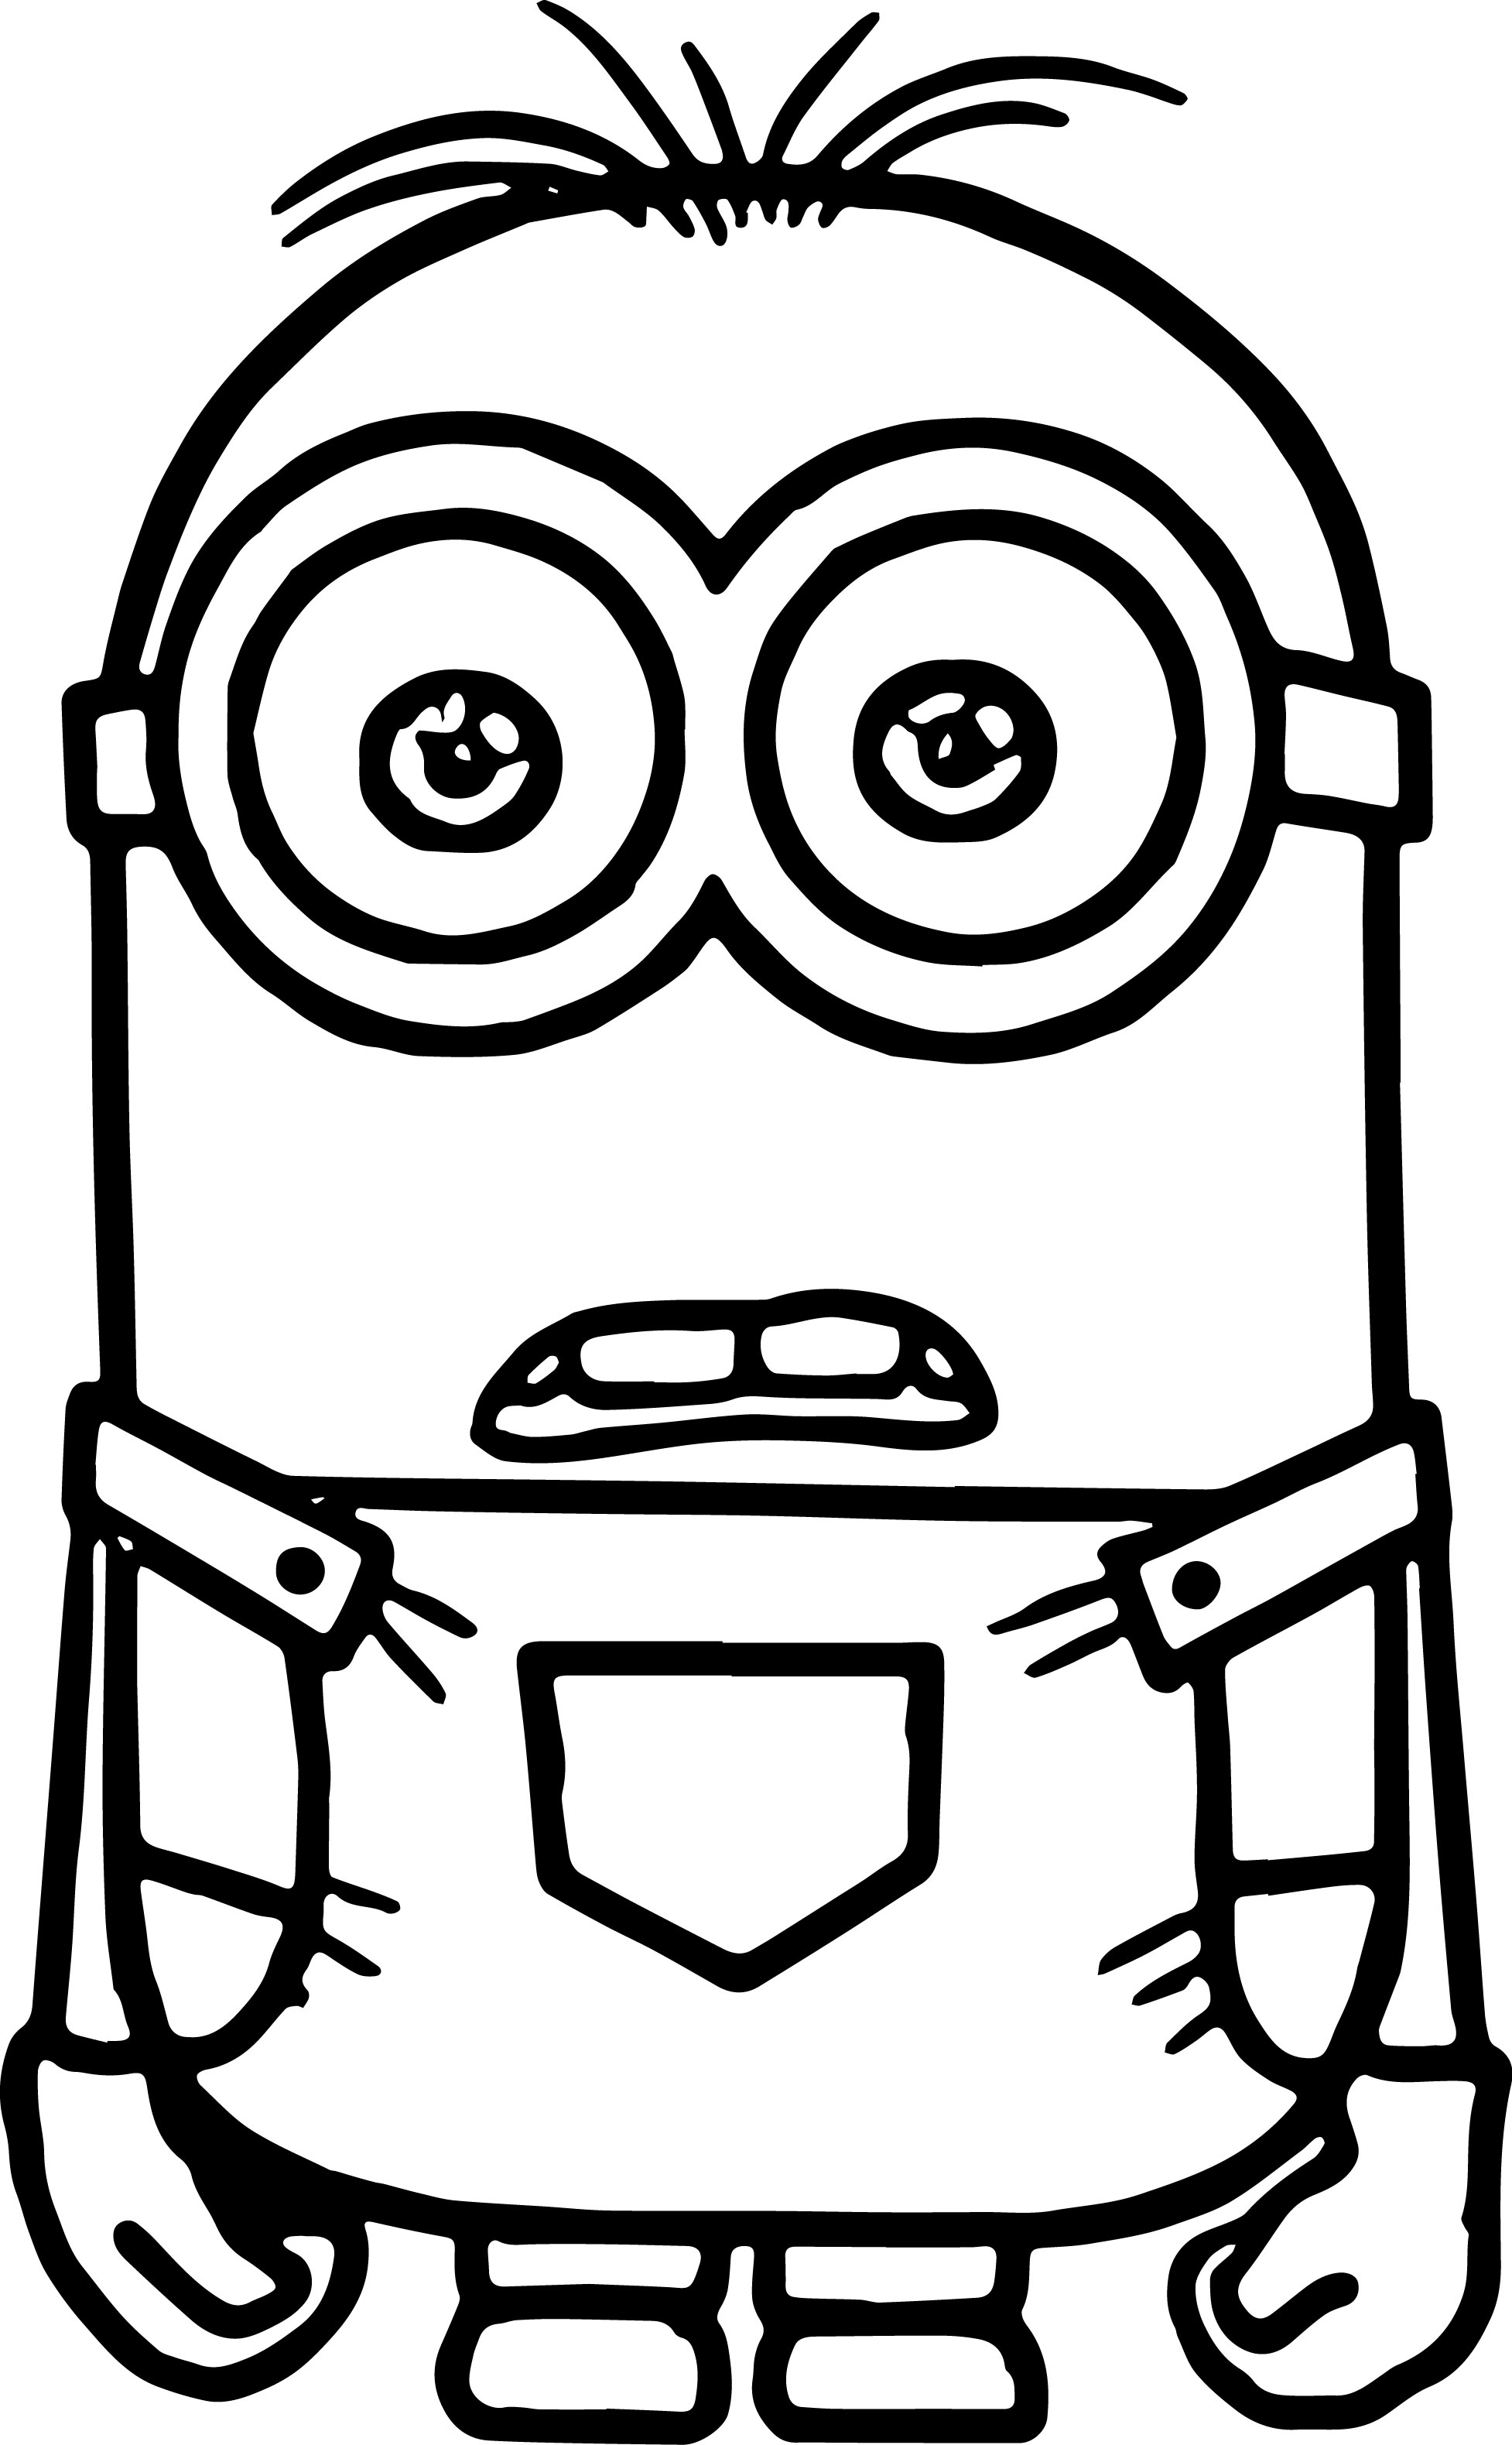 graphic about Minions Printable Coloring Pages named Minion Coloring Web pages Cost-free obtain suitable Minion Coloring